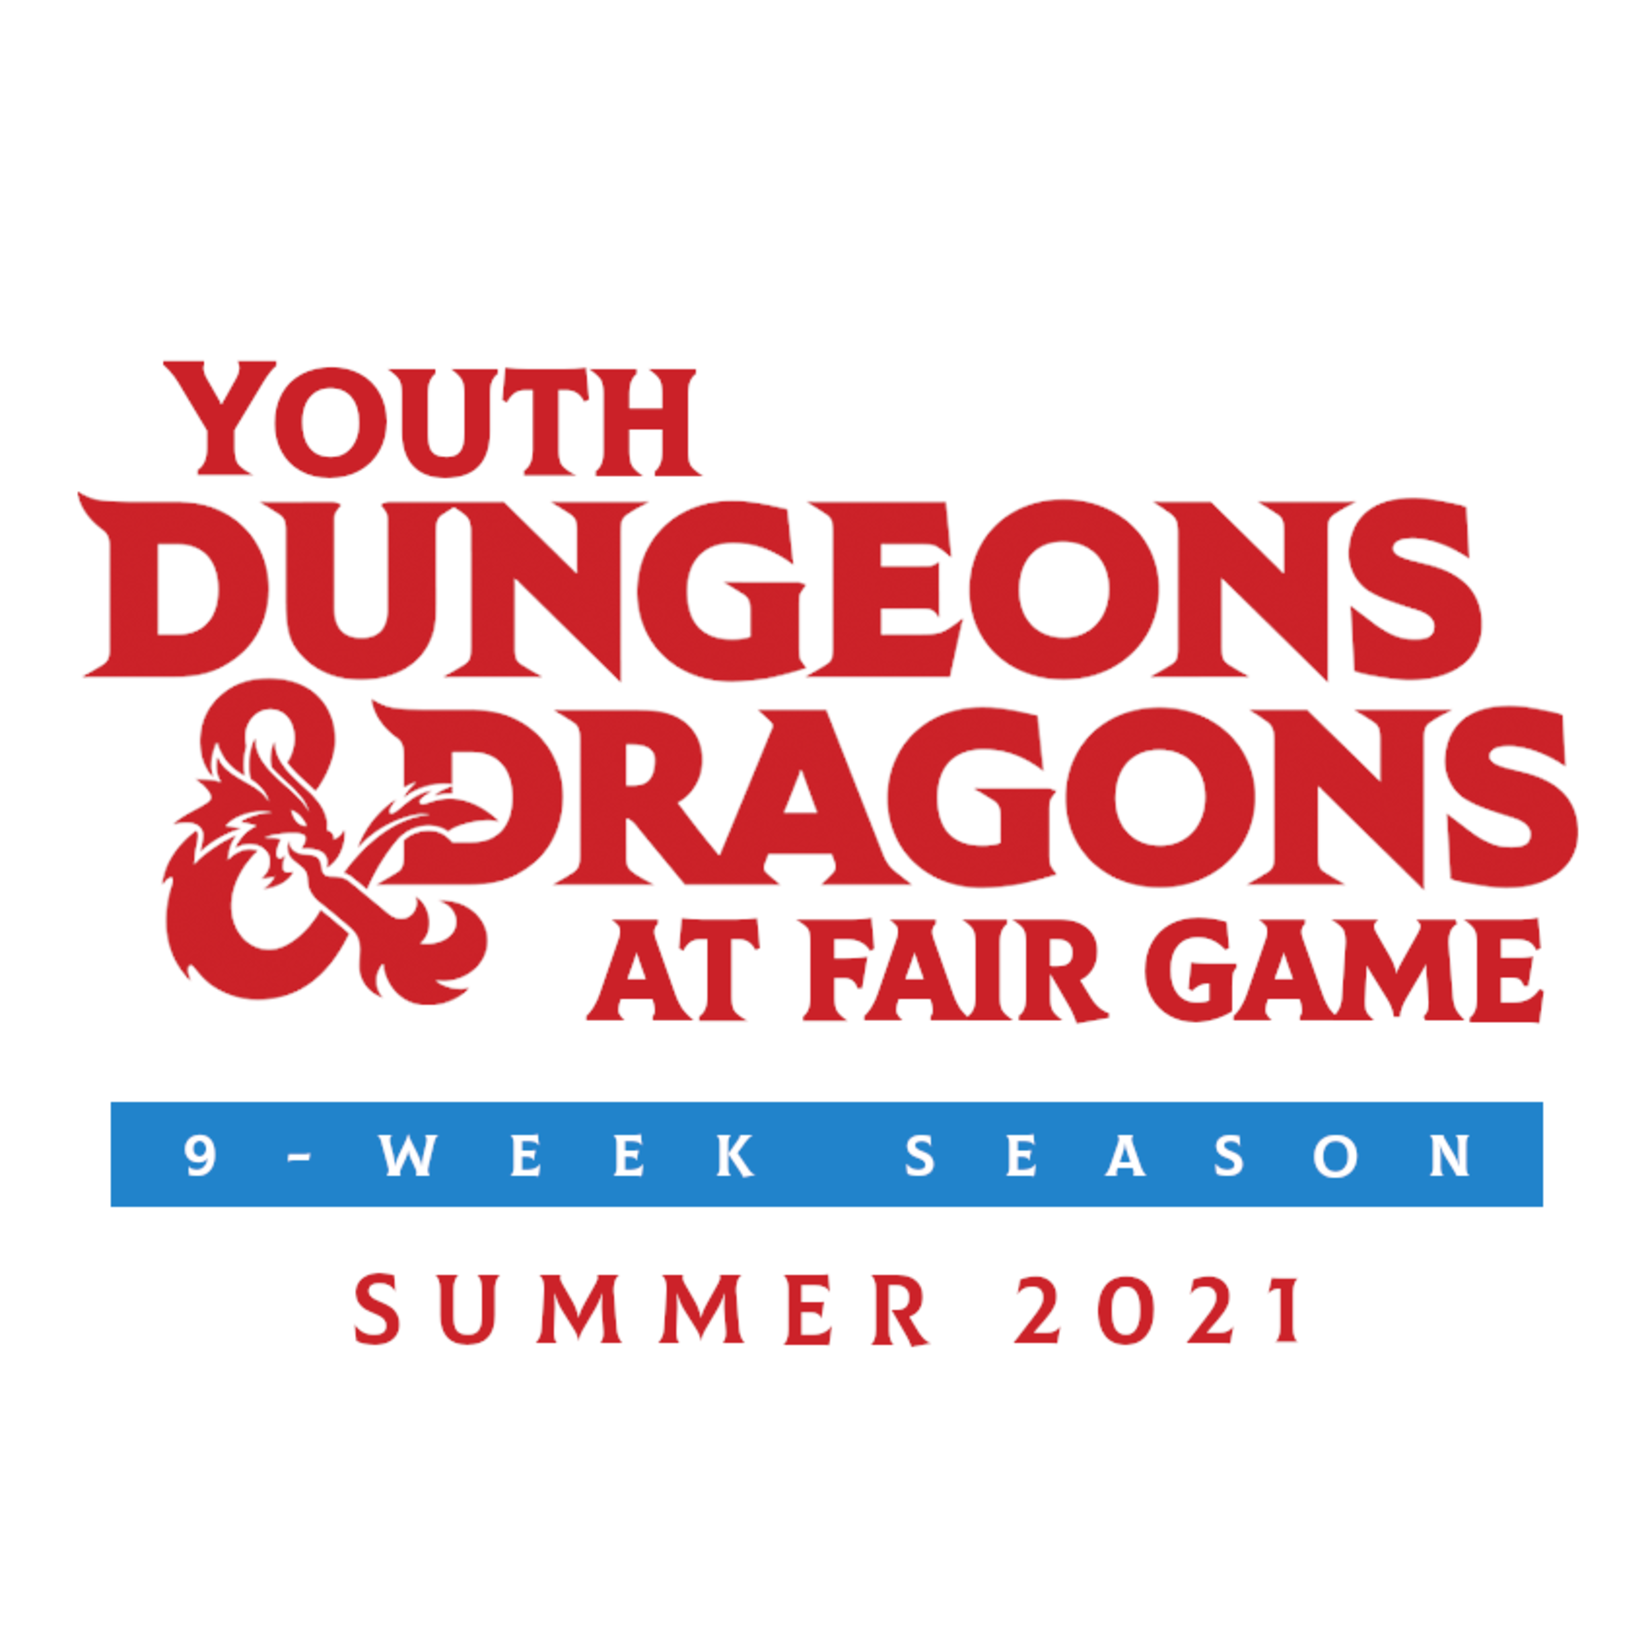 Fair Game YDND Summer 2021 - Group C - Wed 4-6 PM CST (Ages 8-13)